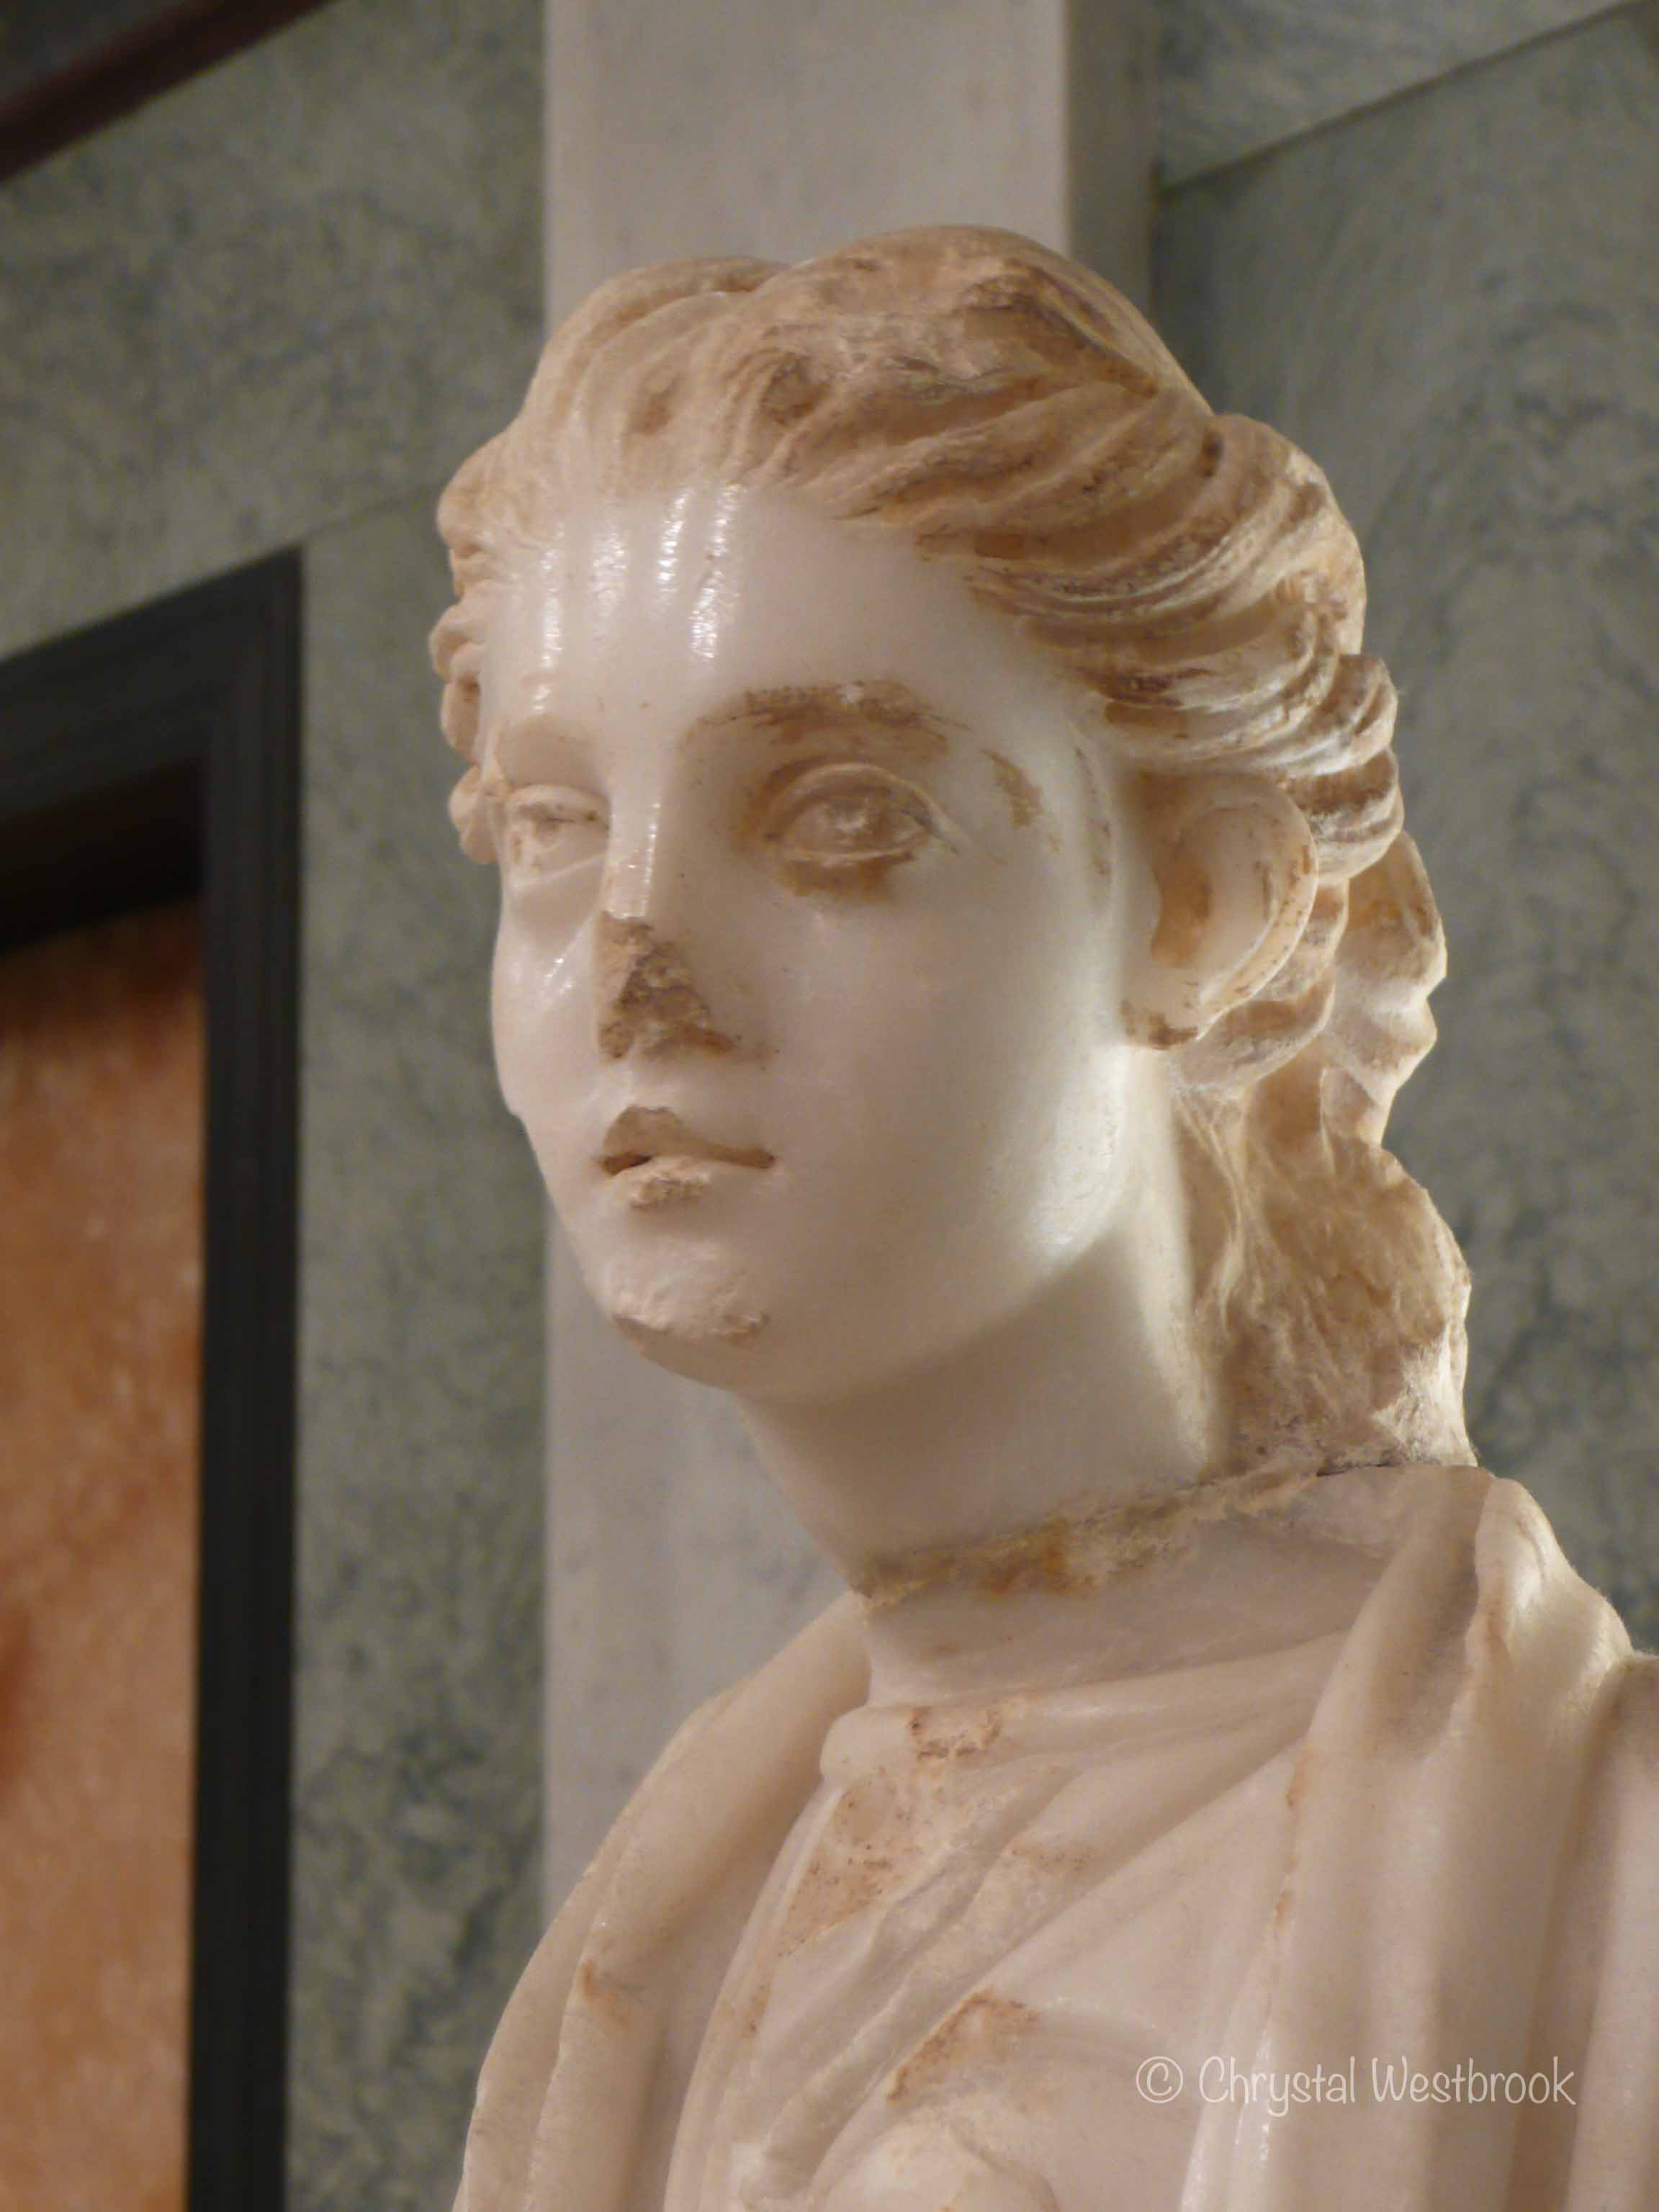 [IMAGE] Alabaster statue of a young woman